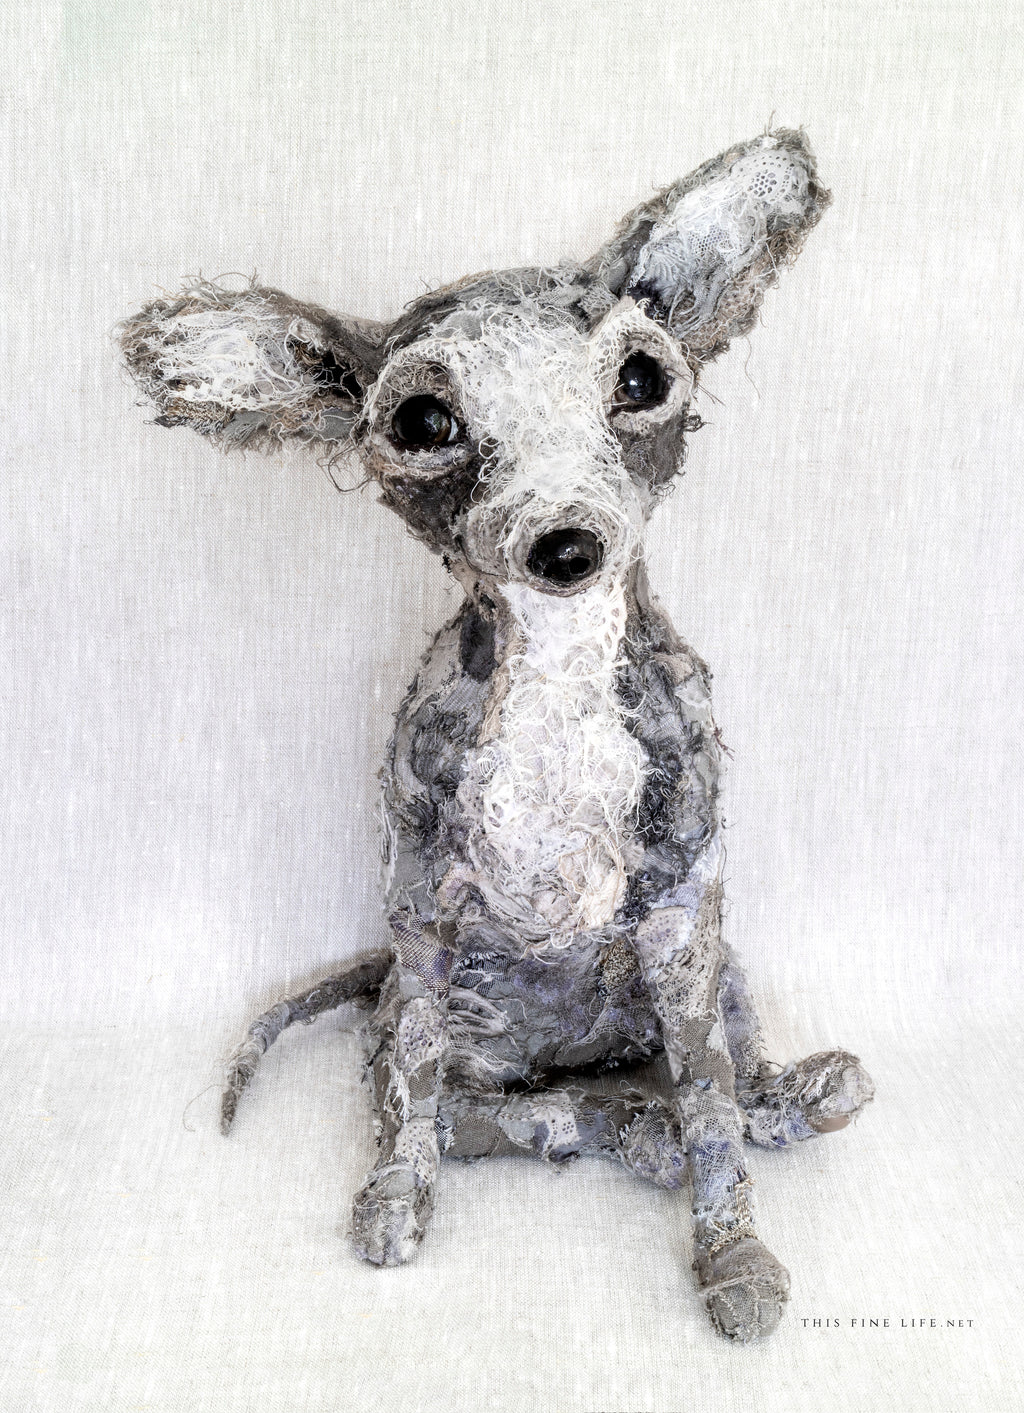 Chihuahua textile sculpture created from vintage and antique textiles